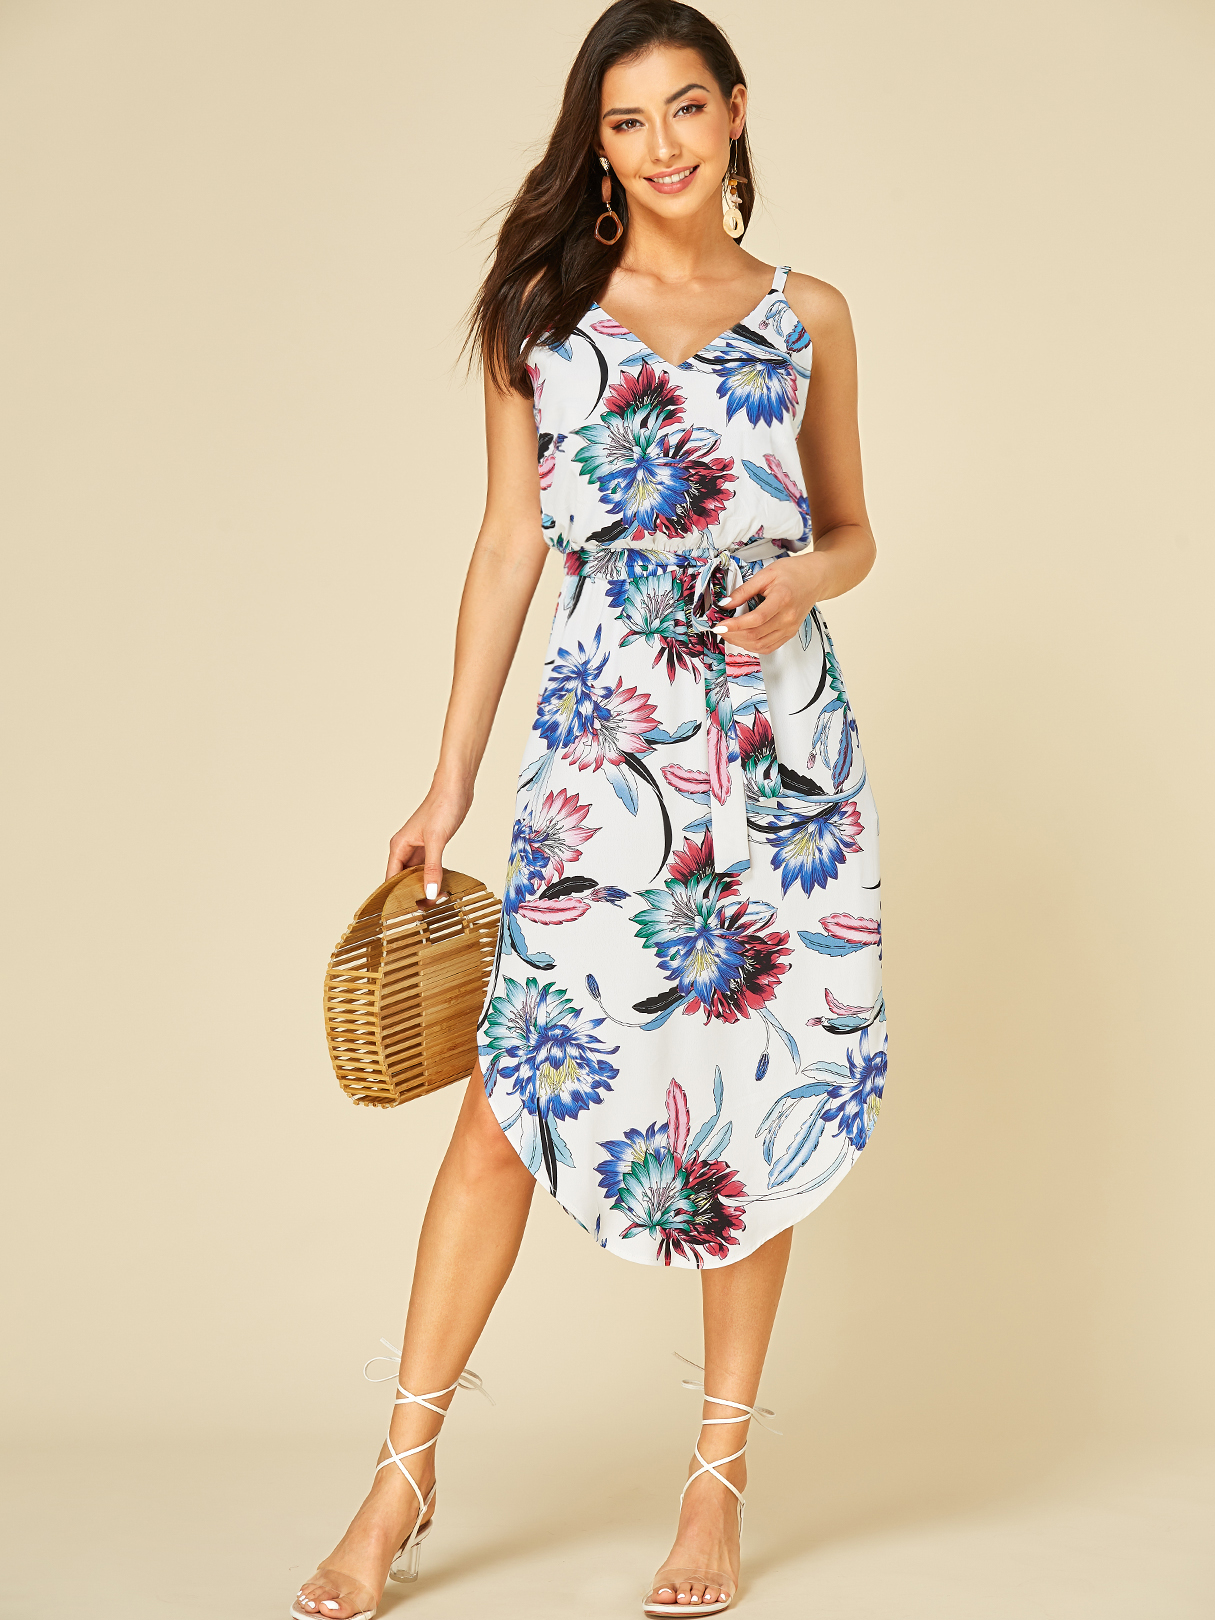 white backless design floral print v-neck sleeveless dress